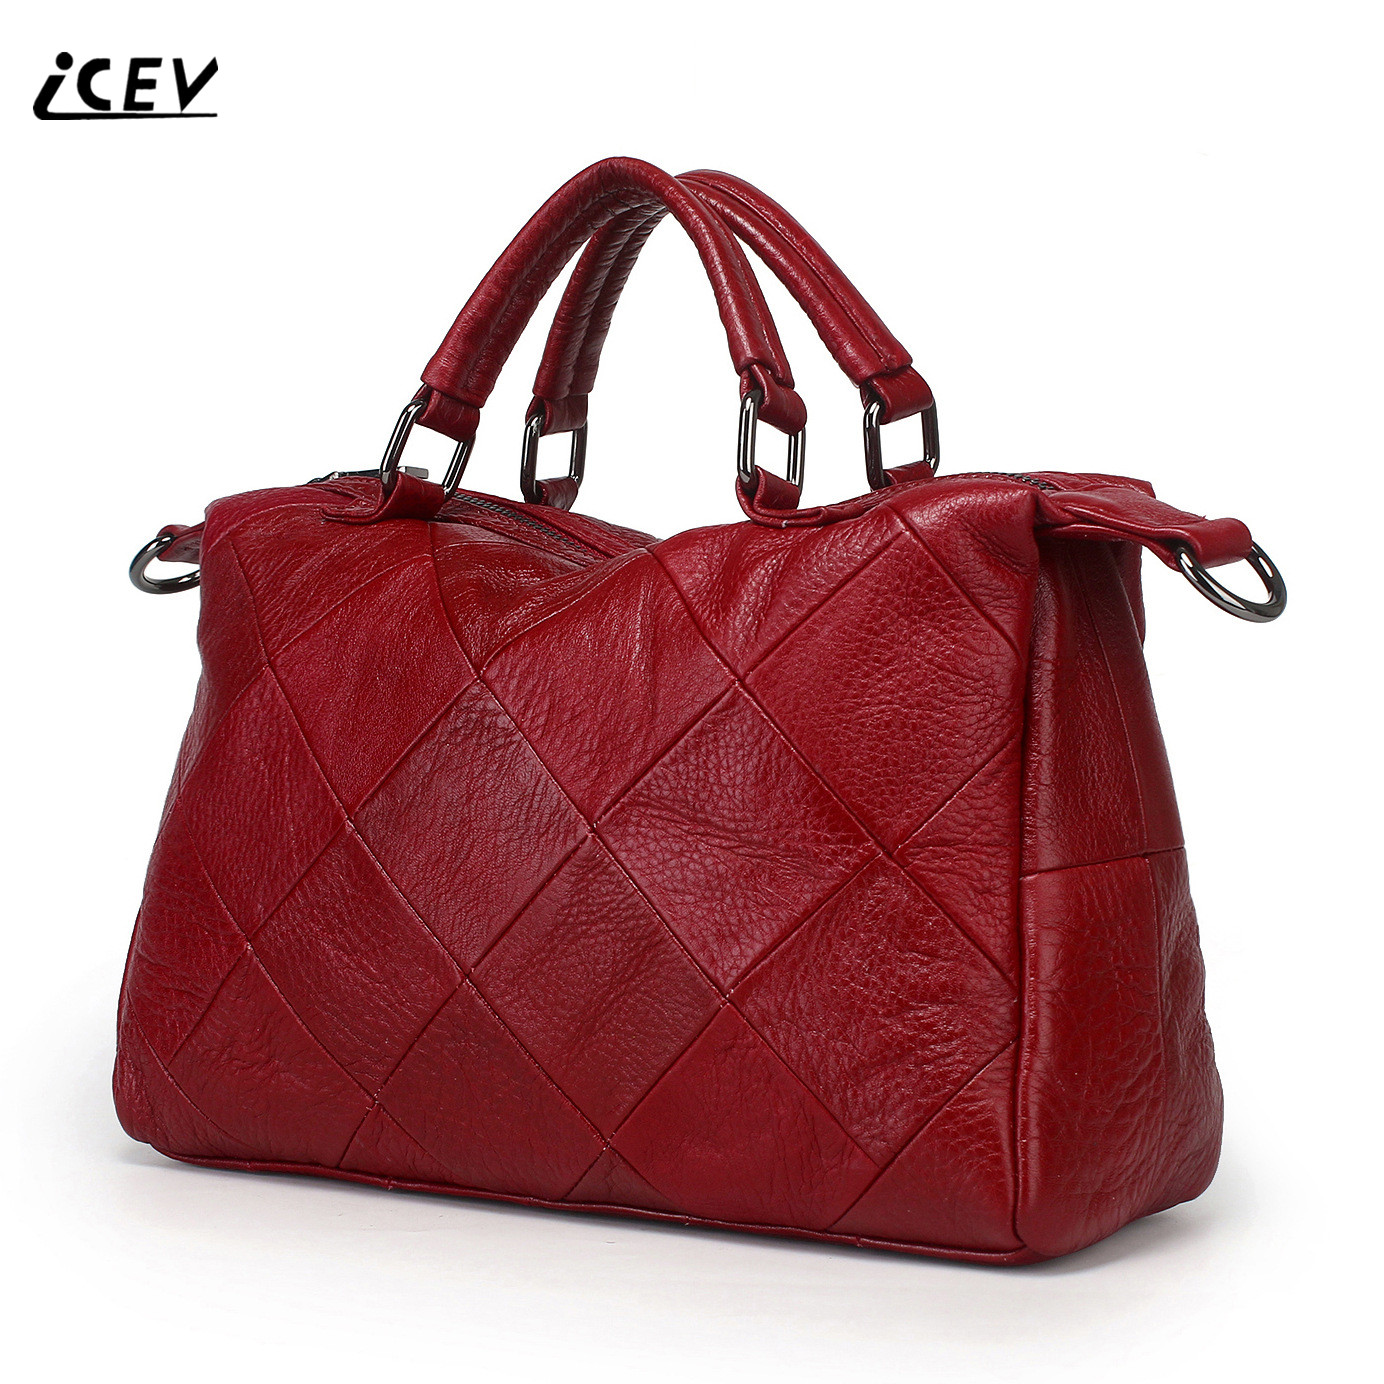 ICEV New Brands Simple Classic Female Cow Leather Designer Handbags High Quality Genuine Leather Handbags Women Leather Handbags